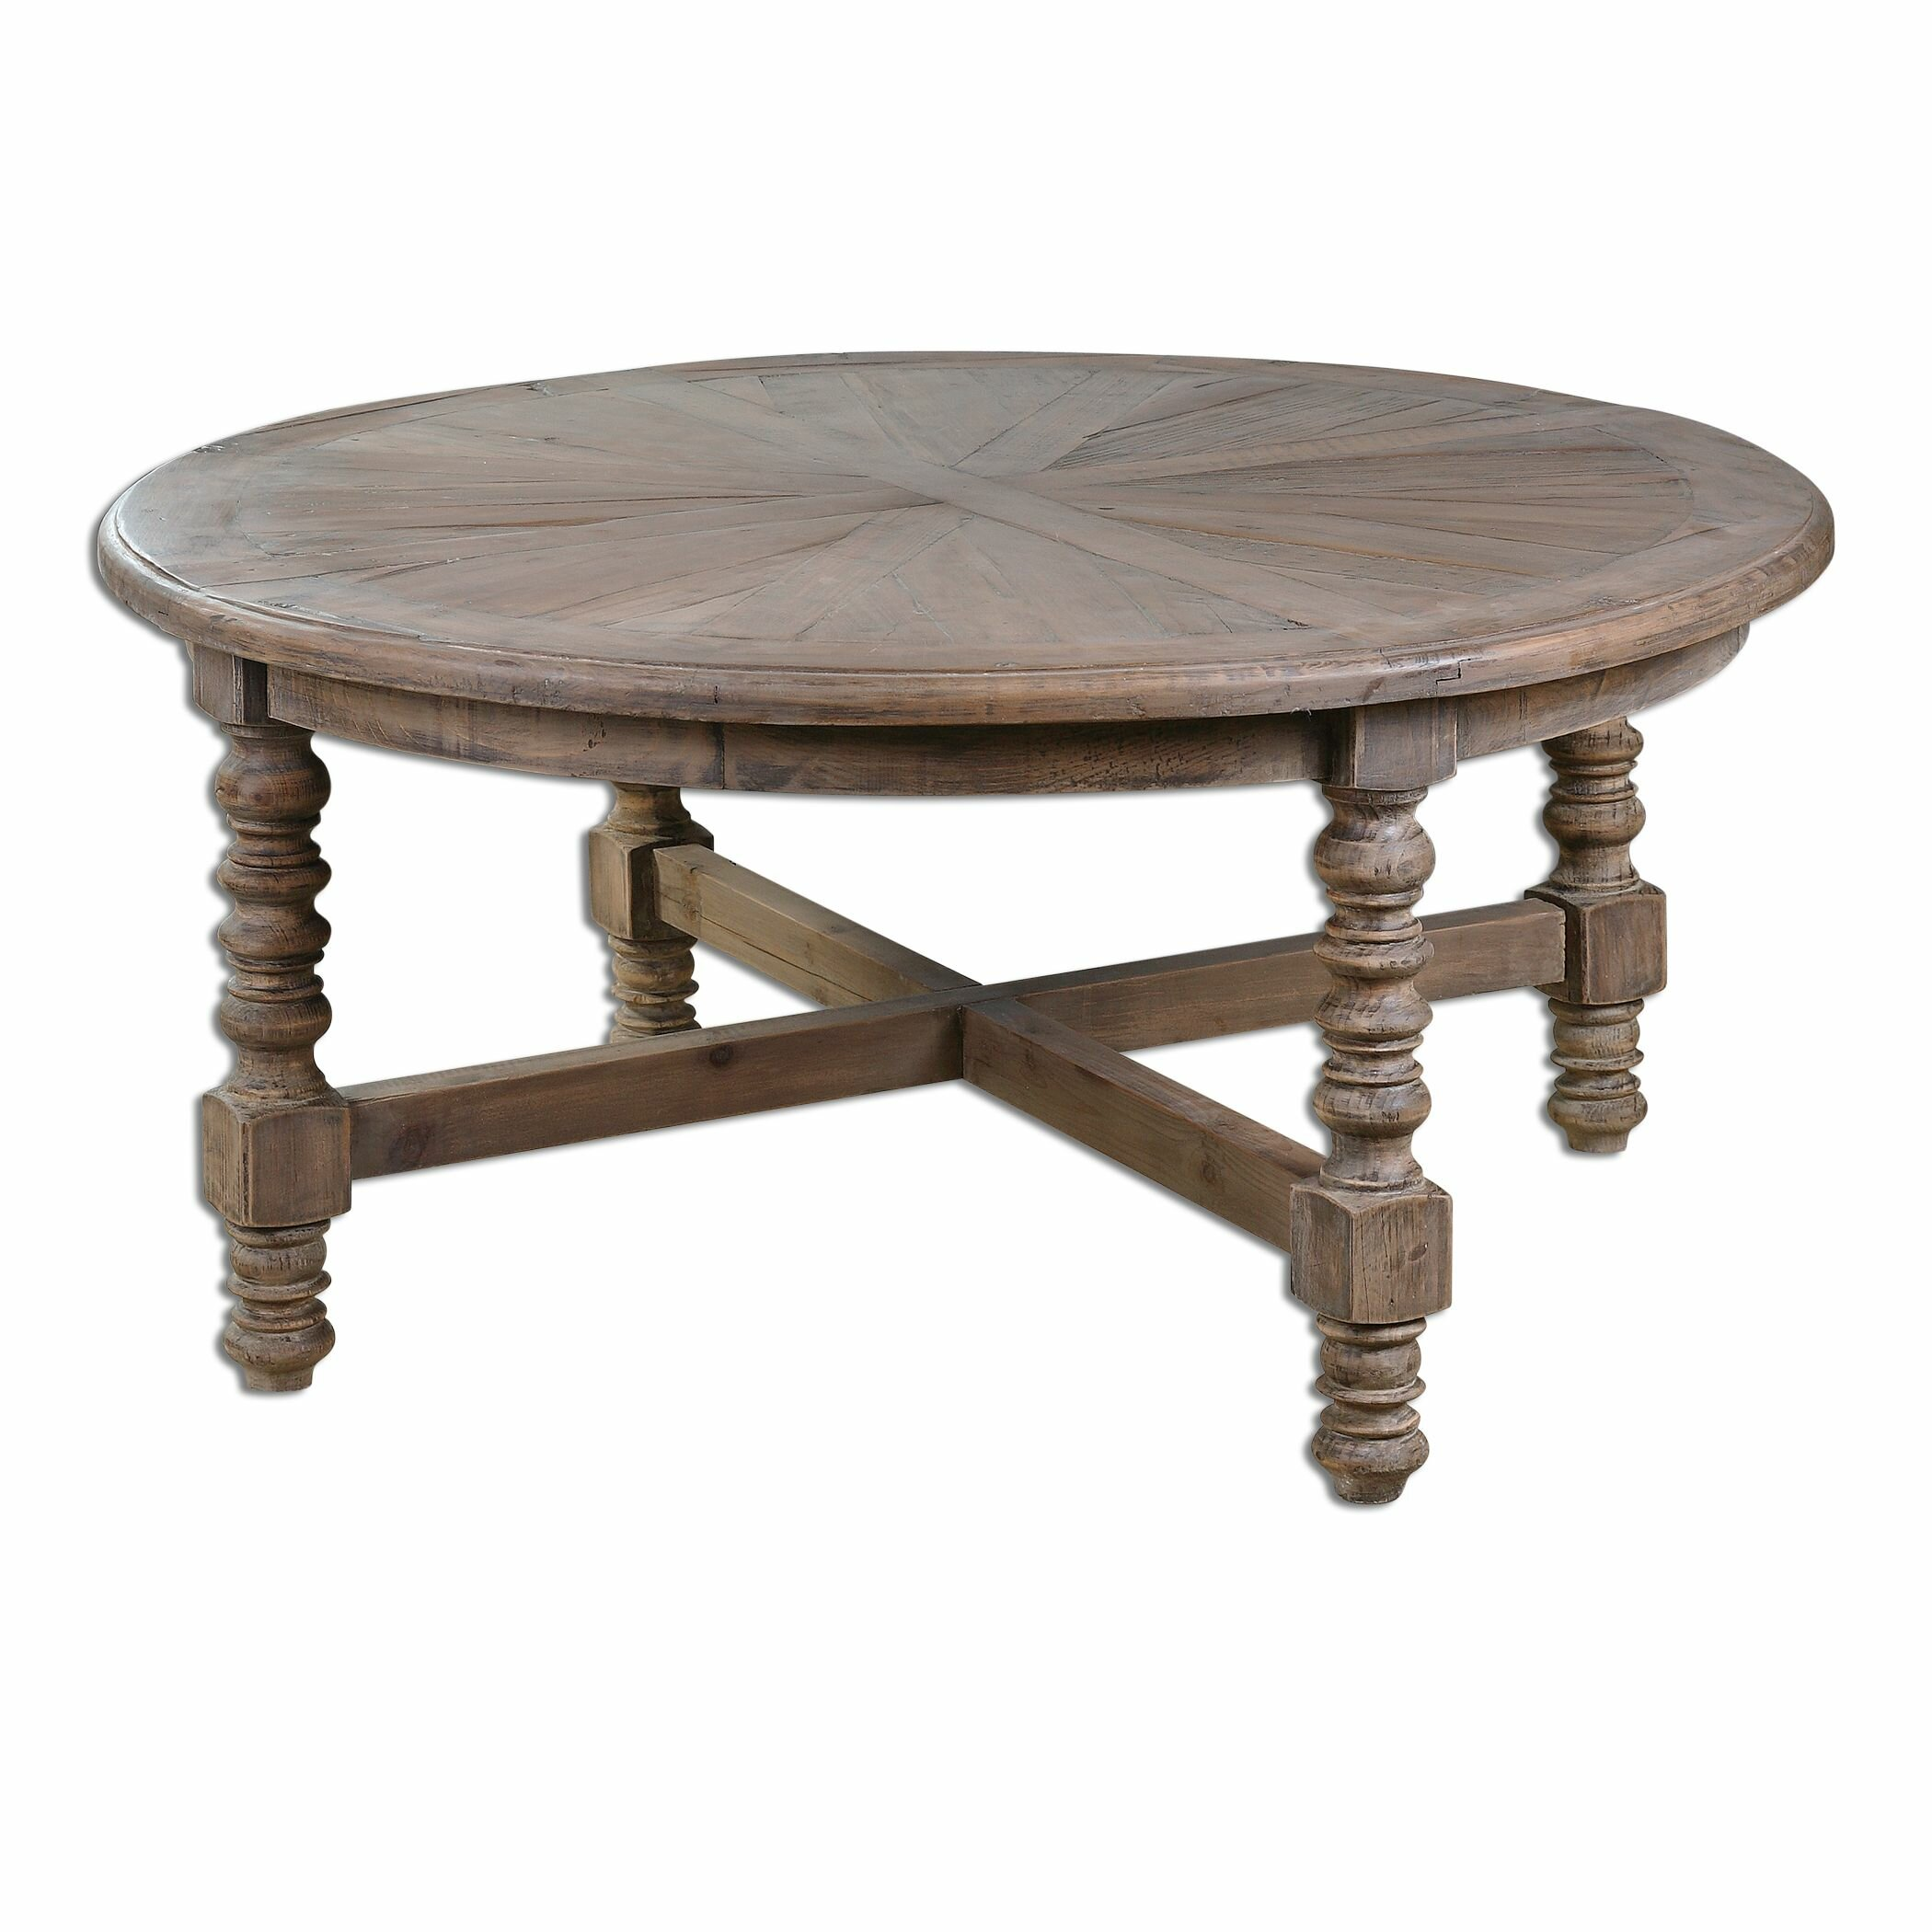 Uttermost samuelle wooden coffee table reviews wayfair for Coffee table wood